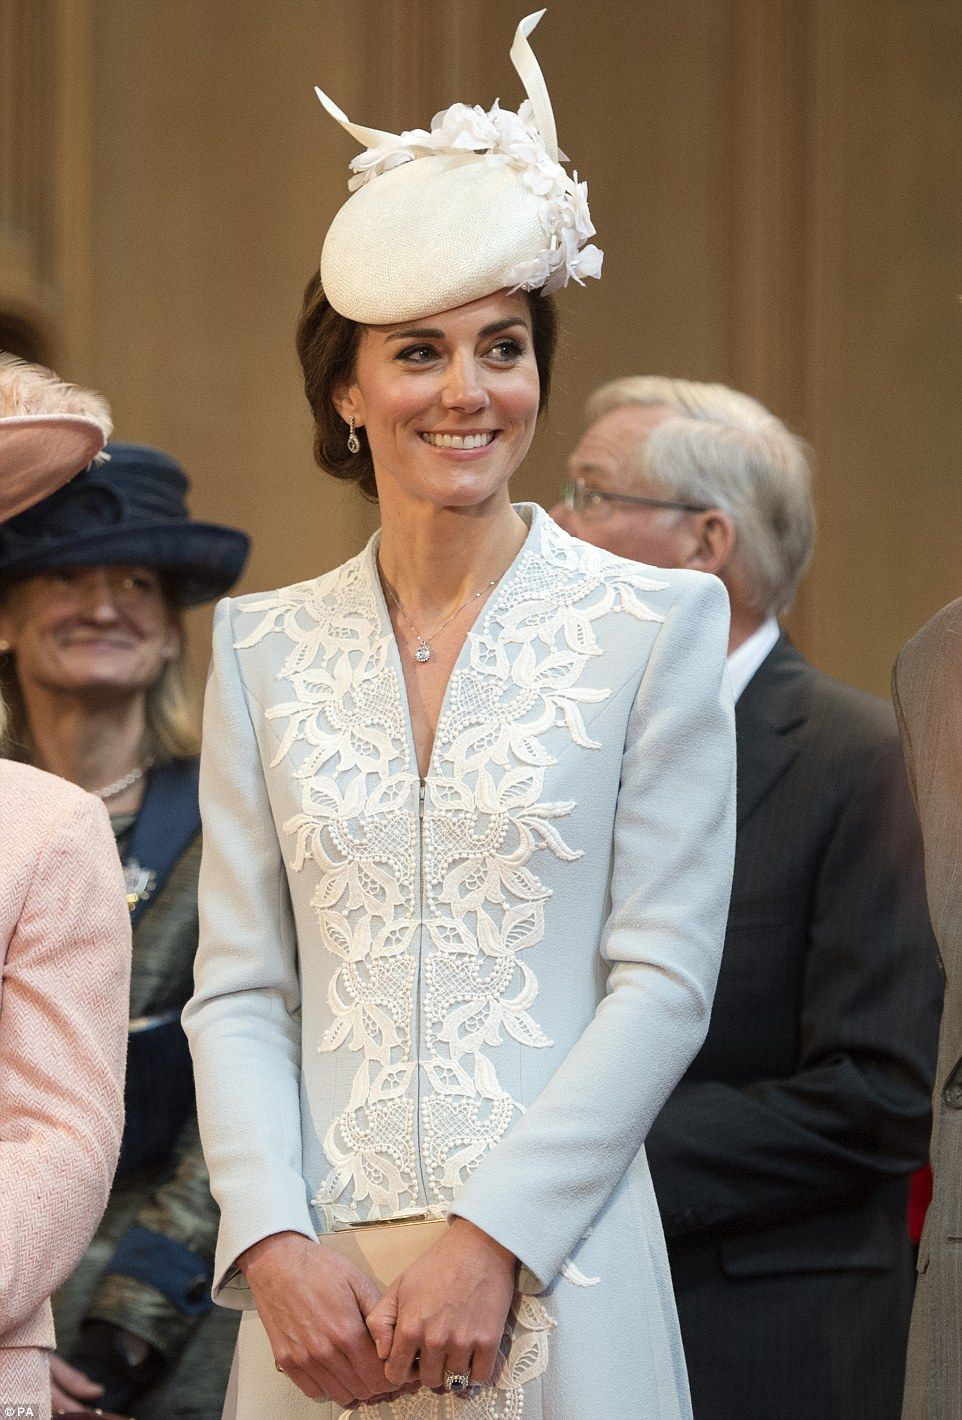 The Duchess of Cambridge revealed today that her daughter Princess Charlotte's sweet face belied a rather 'feisty' nature as she attended a reception at London's Guildhall